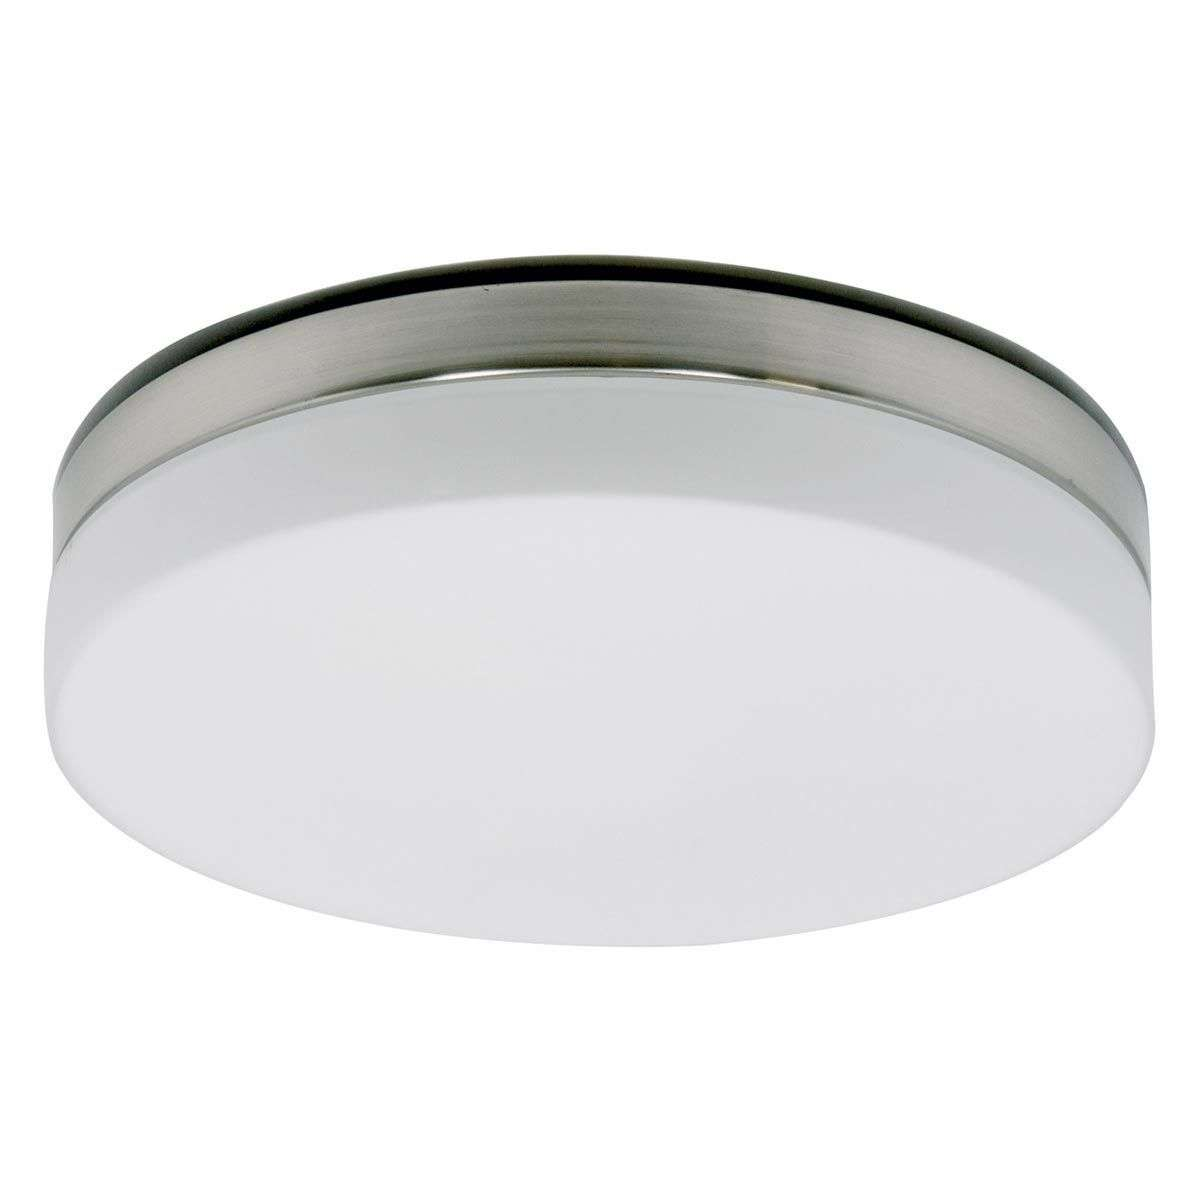 Dimmable Led Bathroom Ceiling Lights - Ceiling Light Ideas